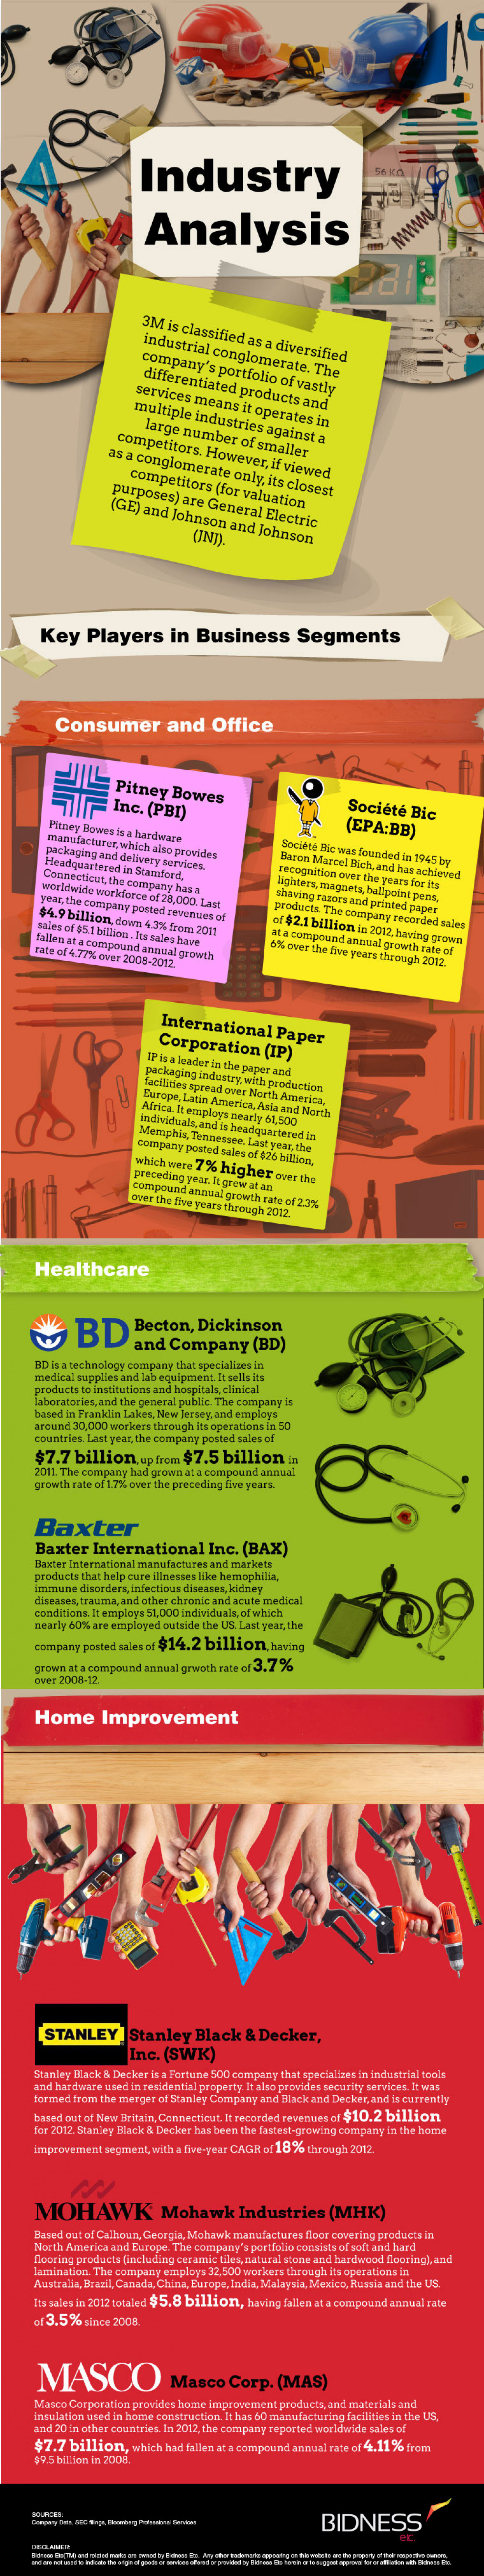 3M Industry Analysis Infographic